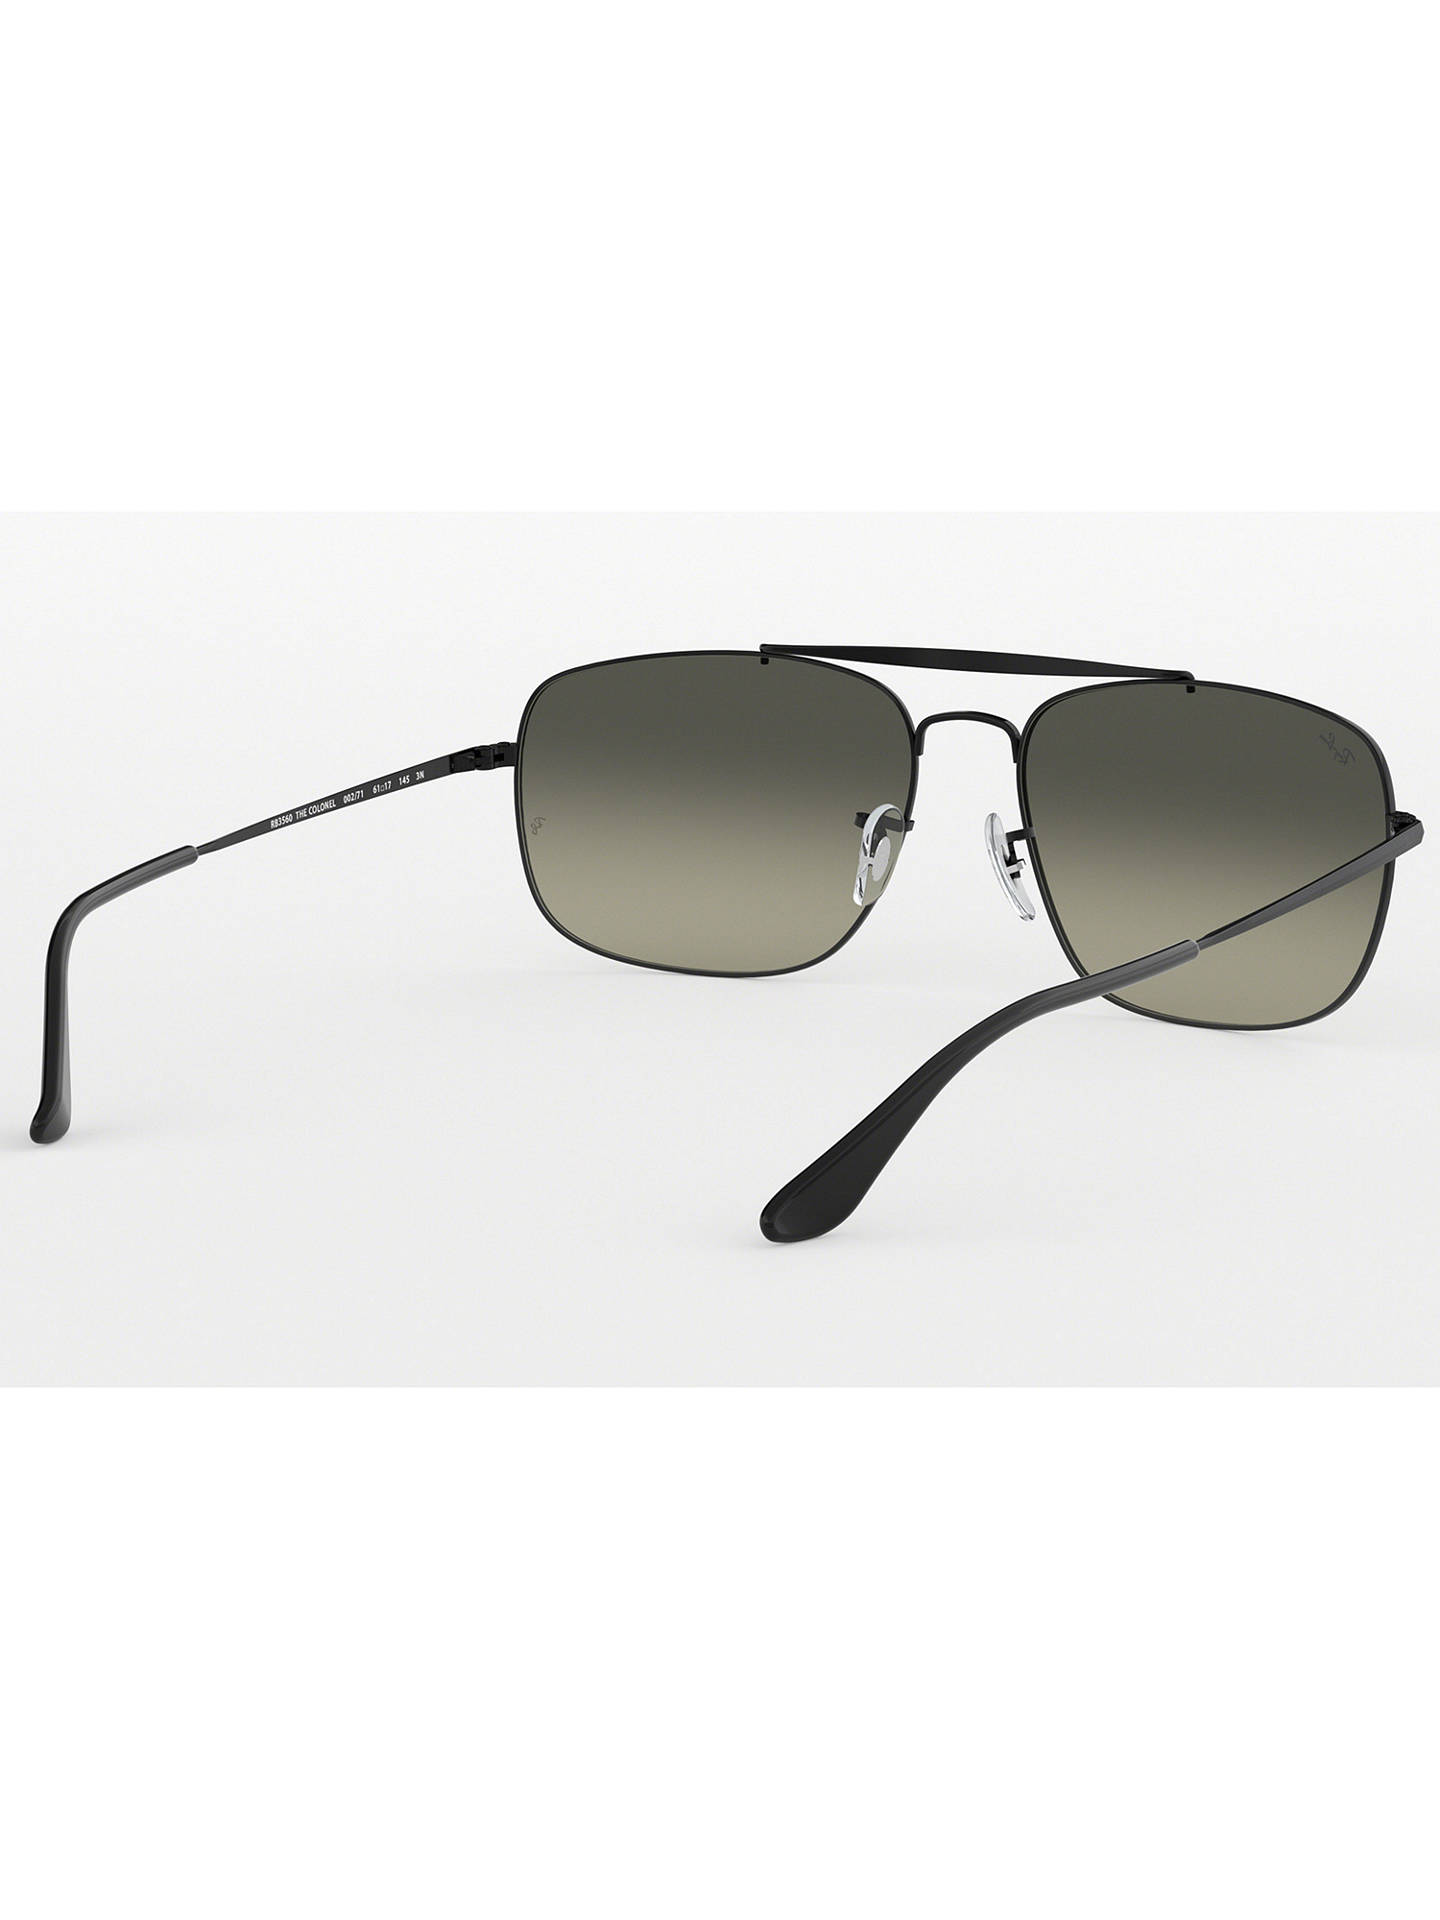 BuyRay-Ban RB3560 Men's The Colonel Square Sunglasses, Black Online at johnlewis.com